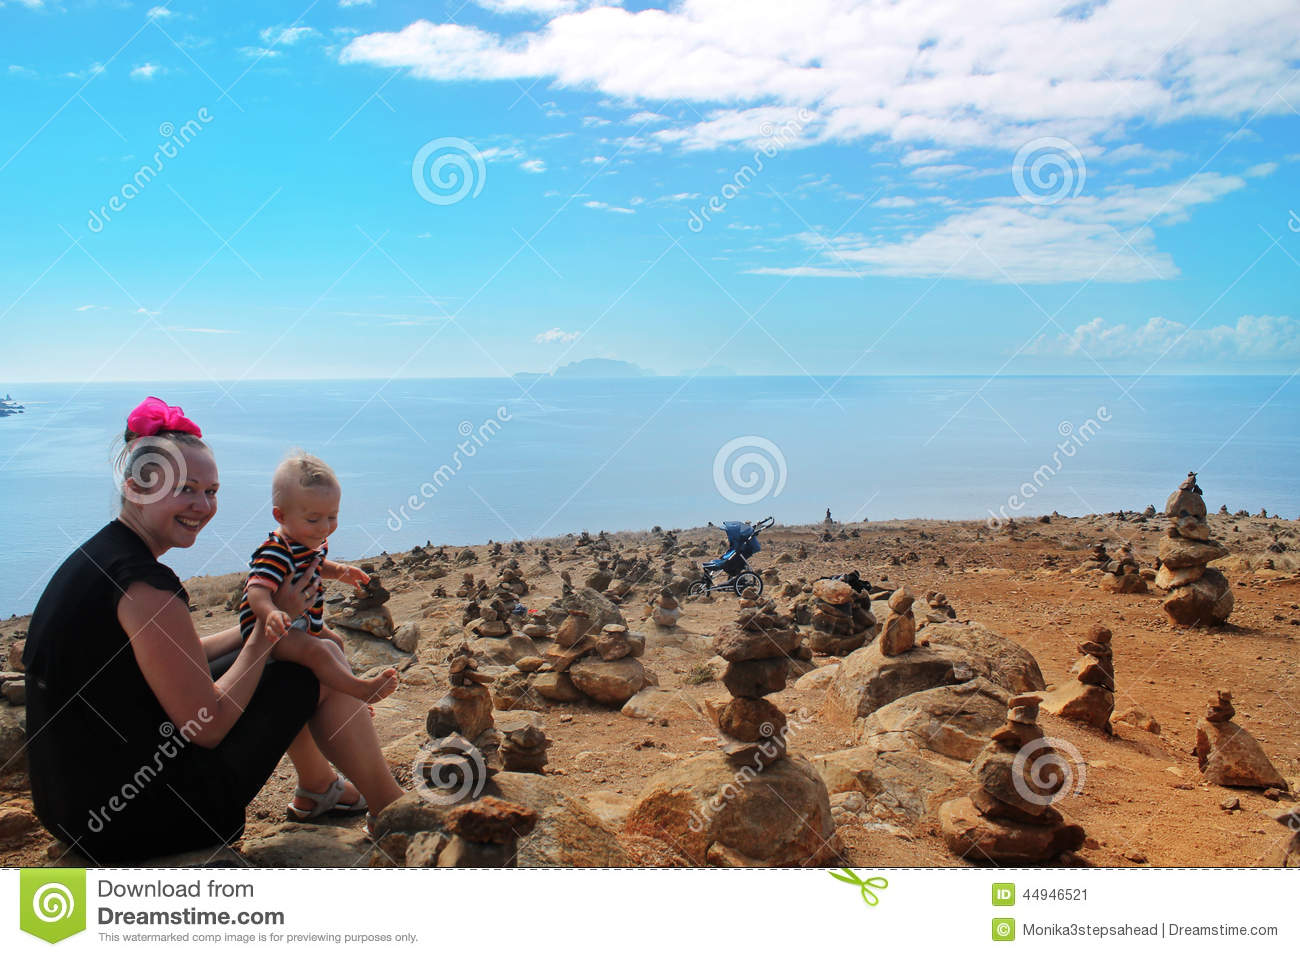 Mother and son on stone desert